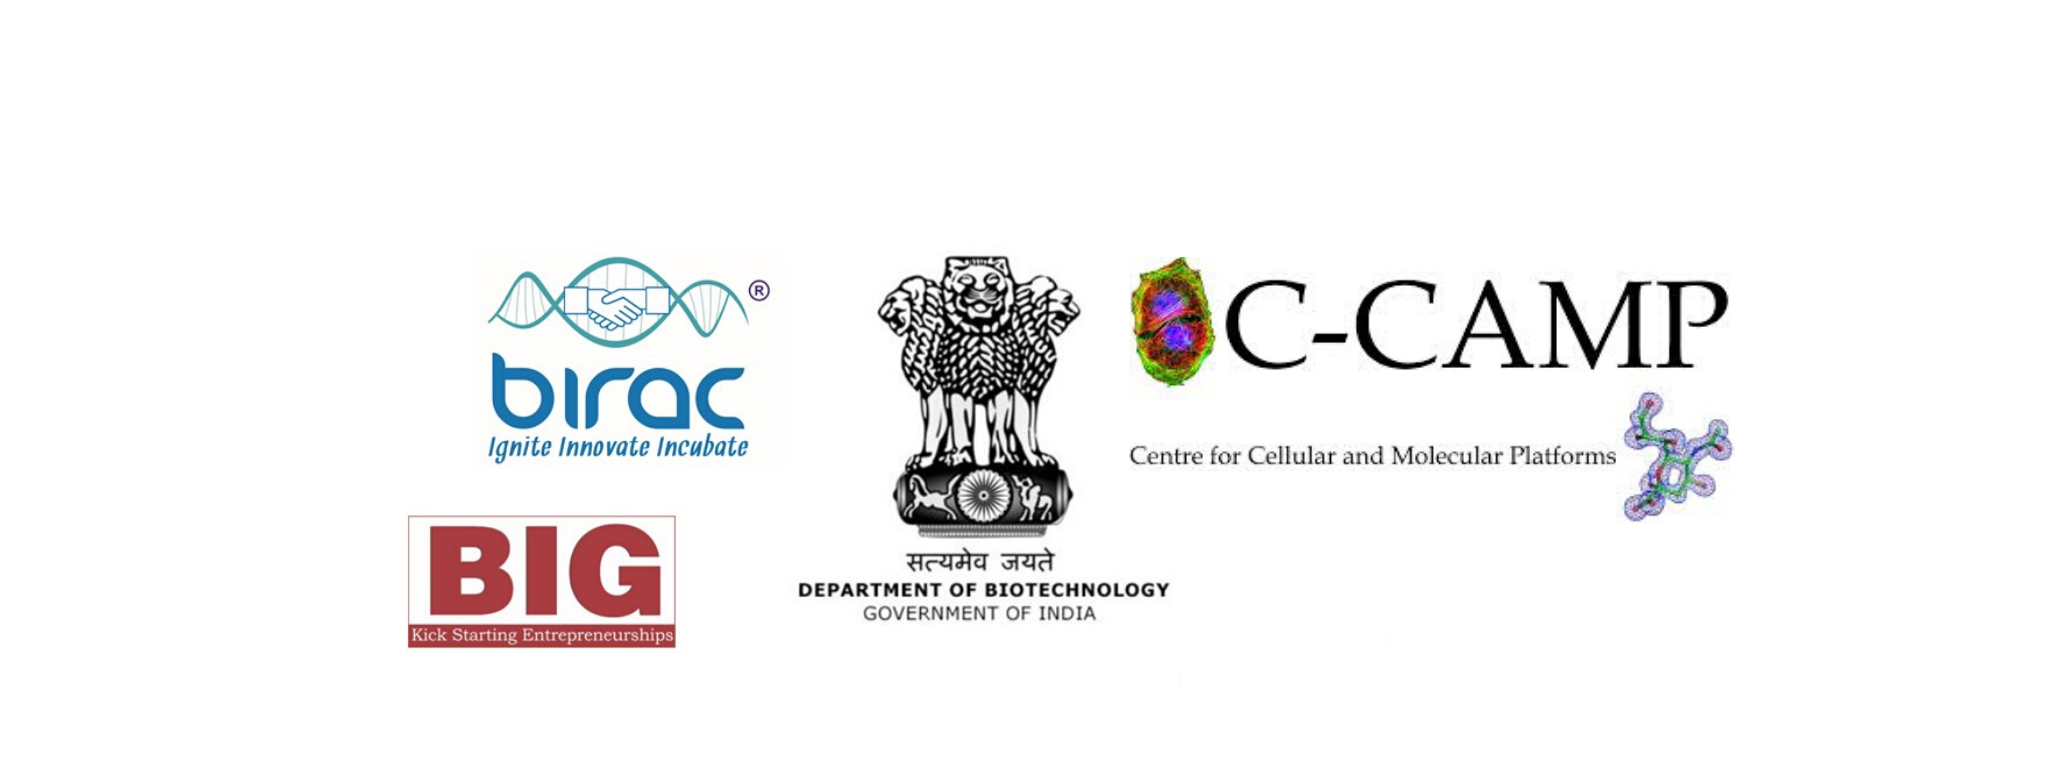 BIRAC BIG Grant winner 2019